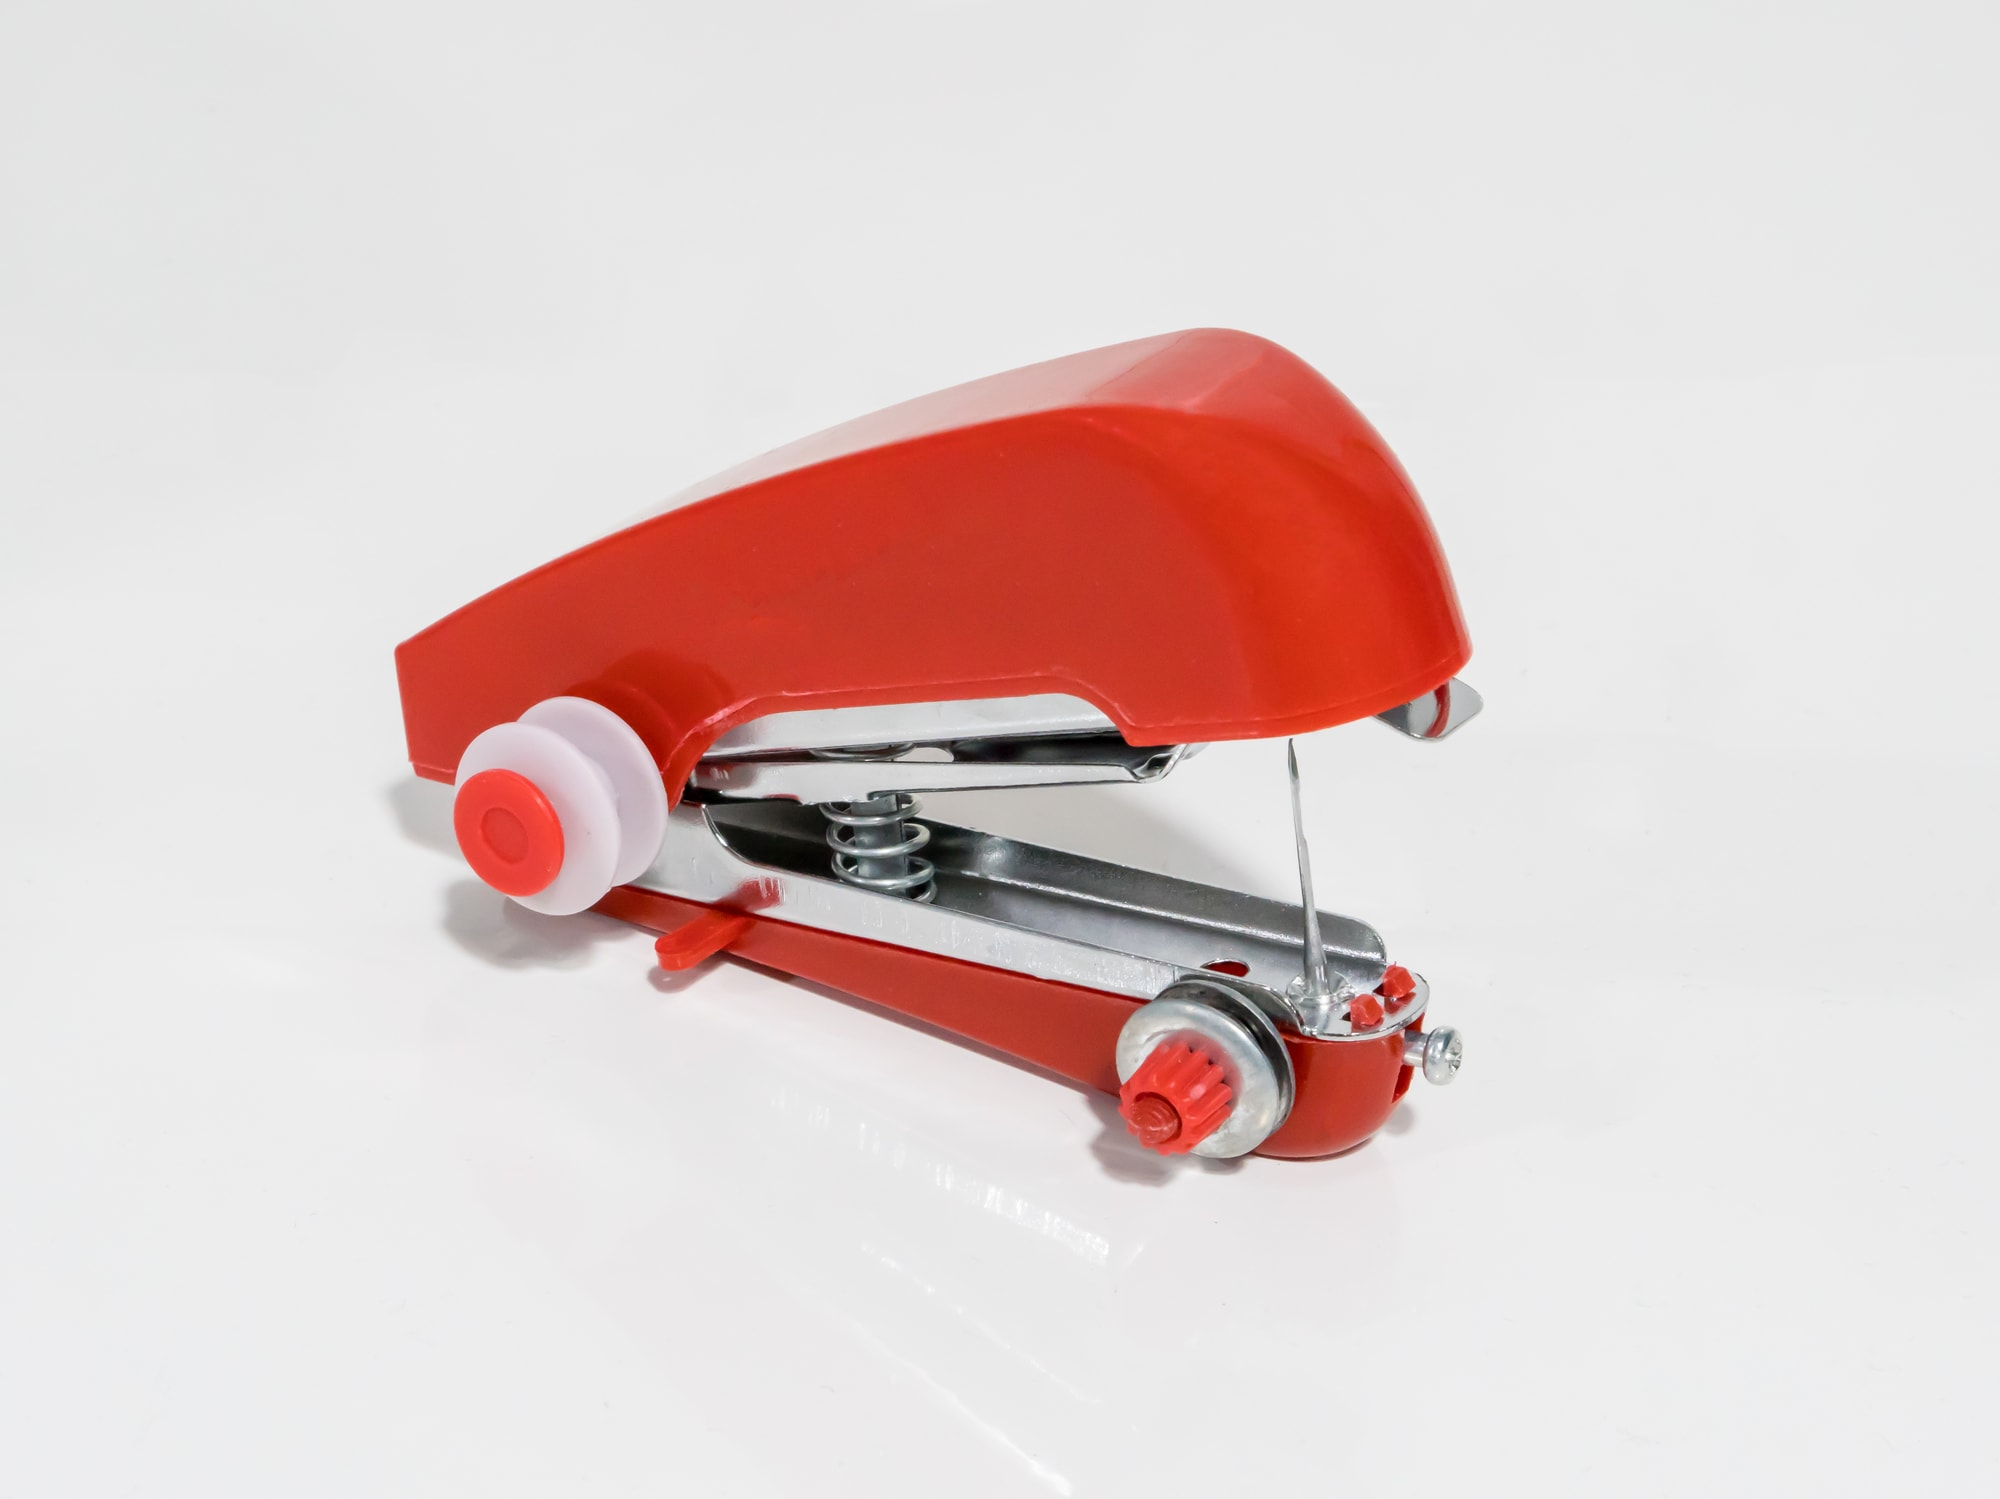 Red handheld sewing machine